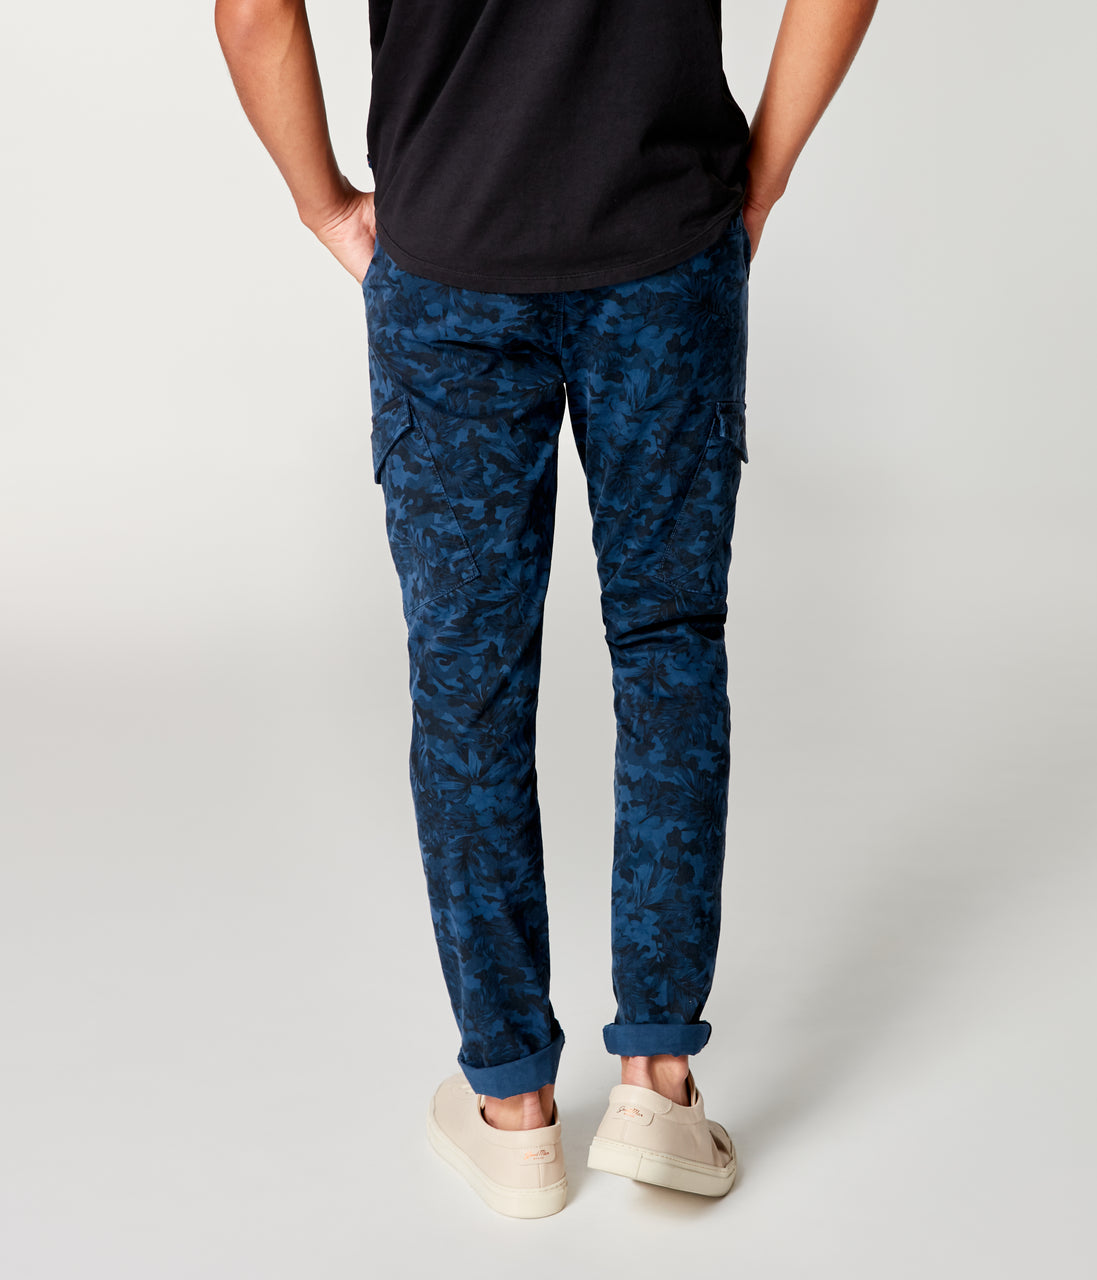 Pro Stretch Twill Star Chino Camo Cargo - Indigo - Good Man Brand - Pro Stretch Twill Star Chino Camo Cargo - Indigo